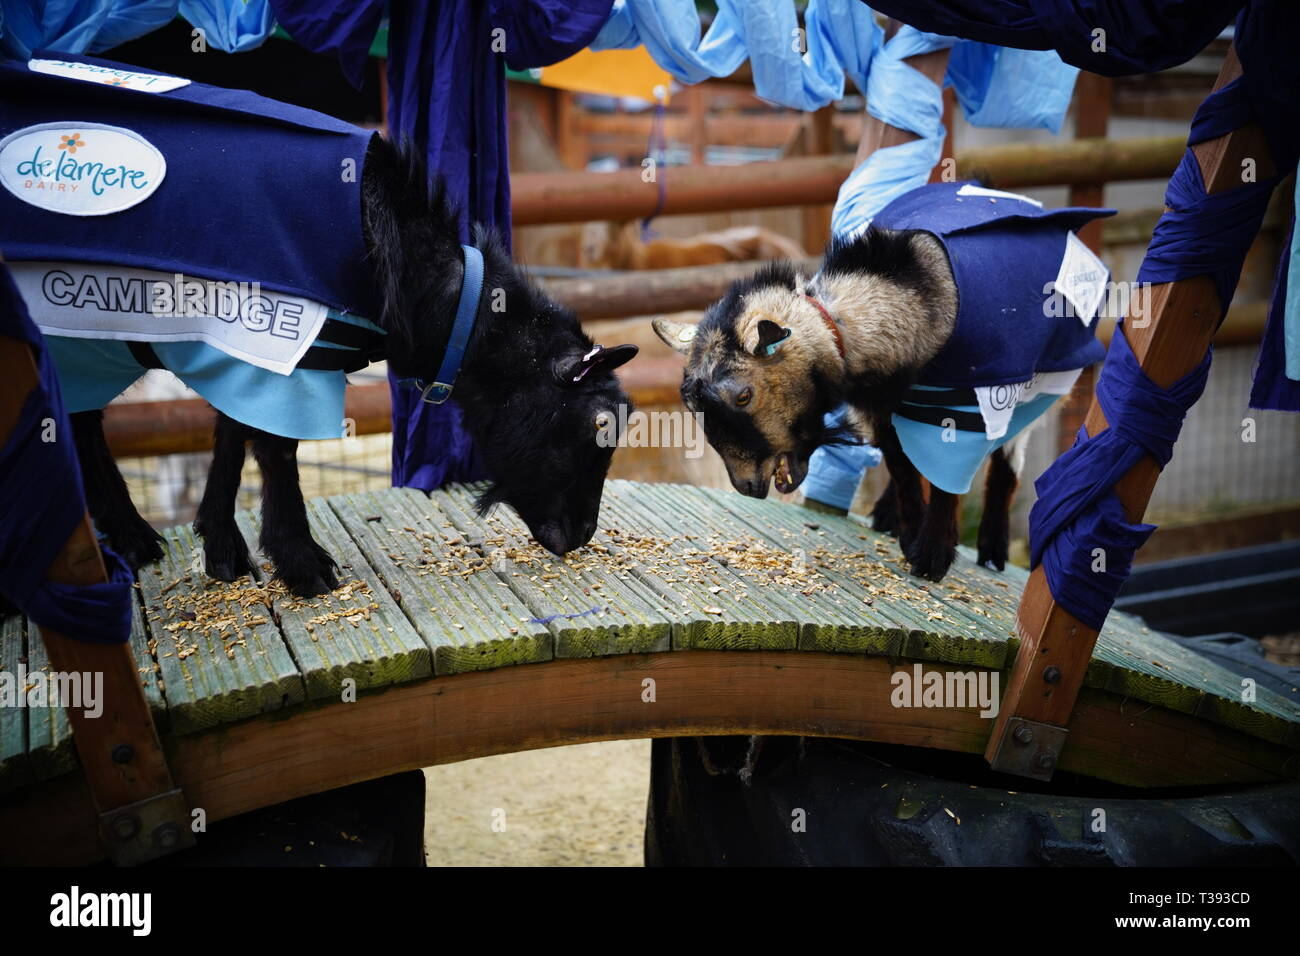 Coinciding with the Oxford & Cambridge Boat Race, two goats (one representing Oxford and one representing Cambridge) race for victory. - Stock Image